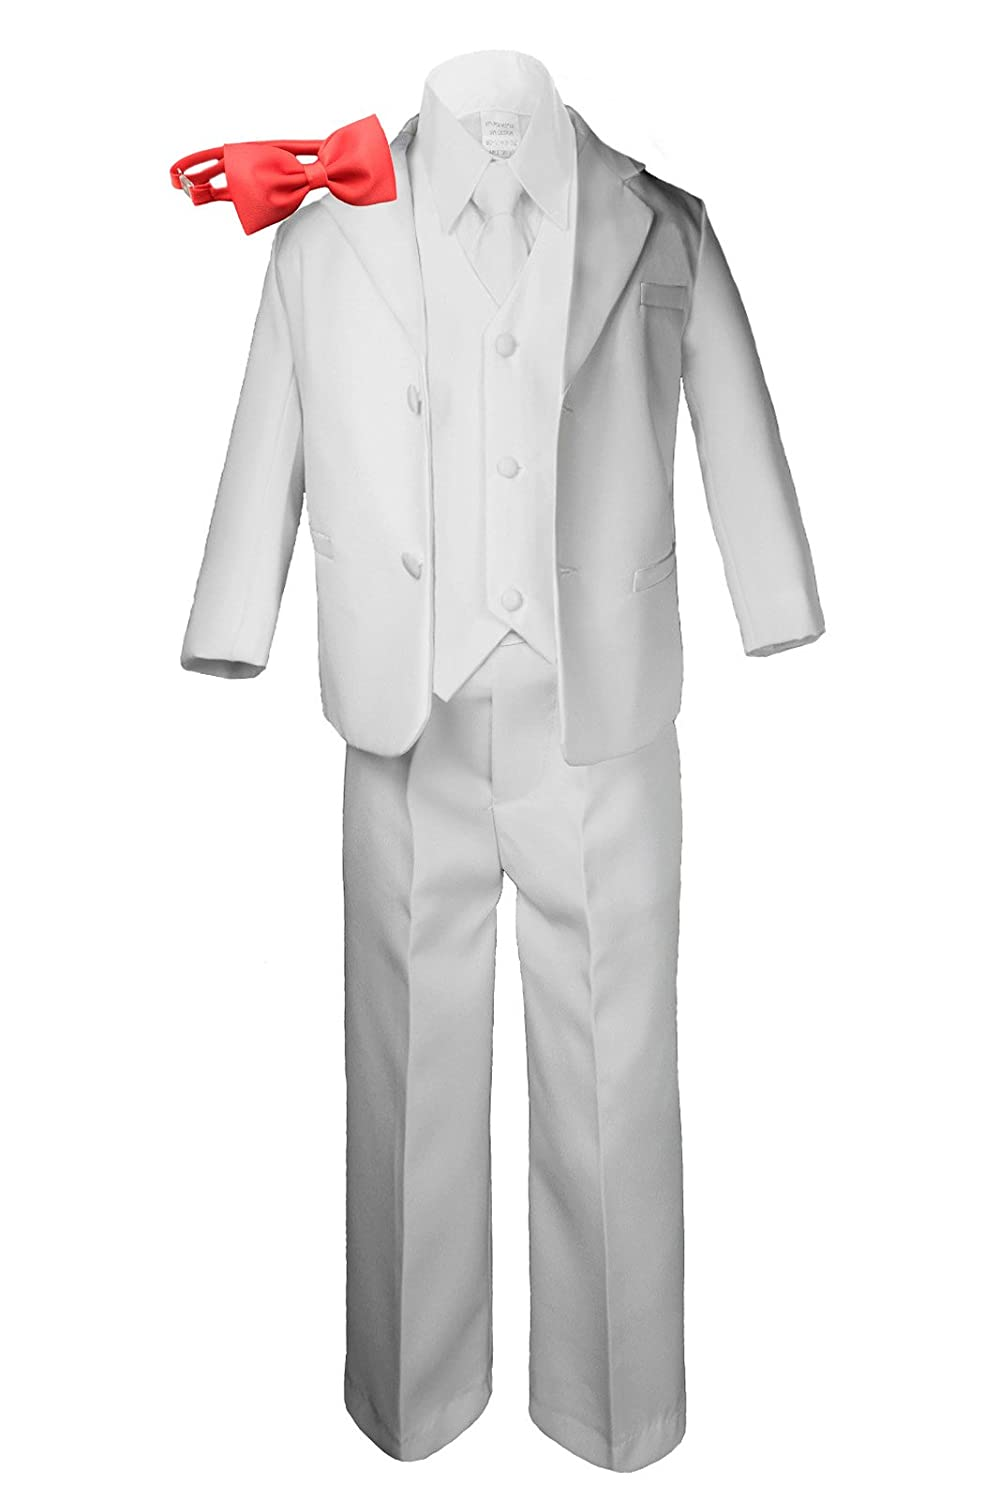 Formal Boy White Suit Notch Lapel Tuxedo Kid Baby Free Red Bow Tie (5)